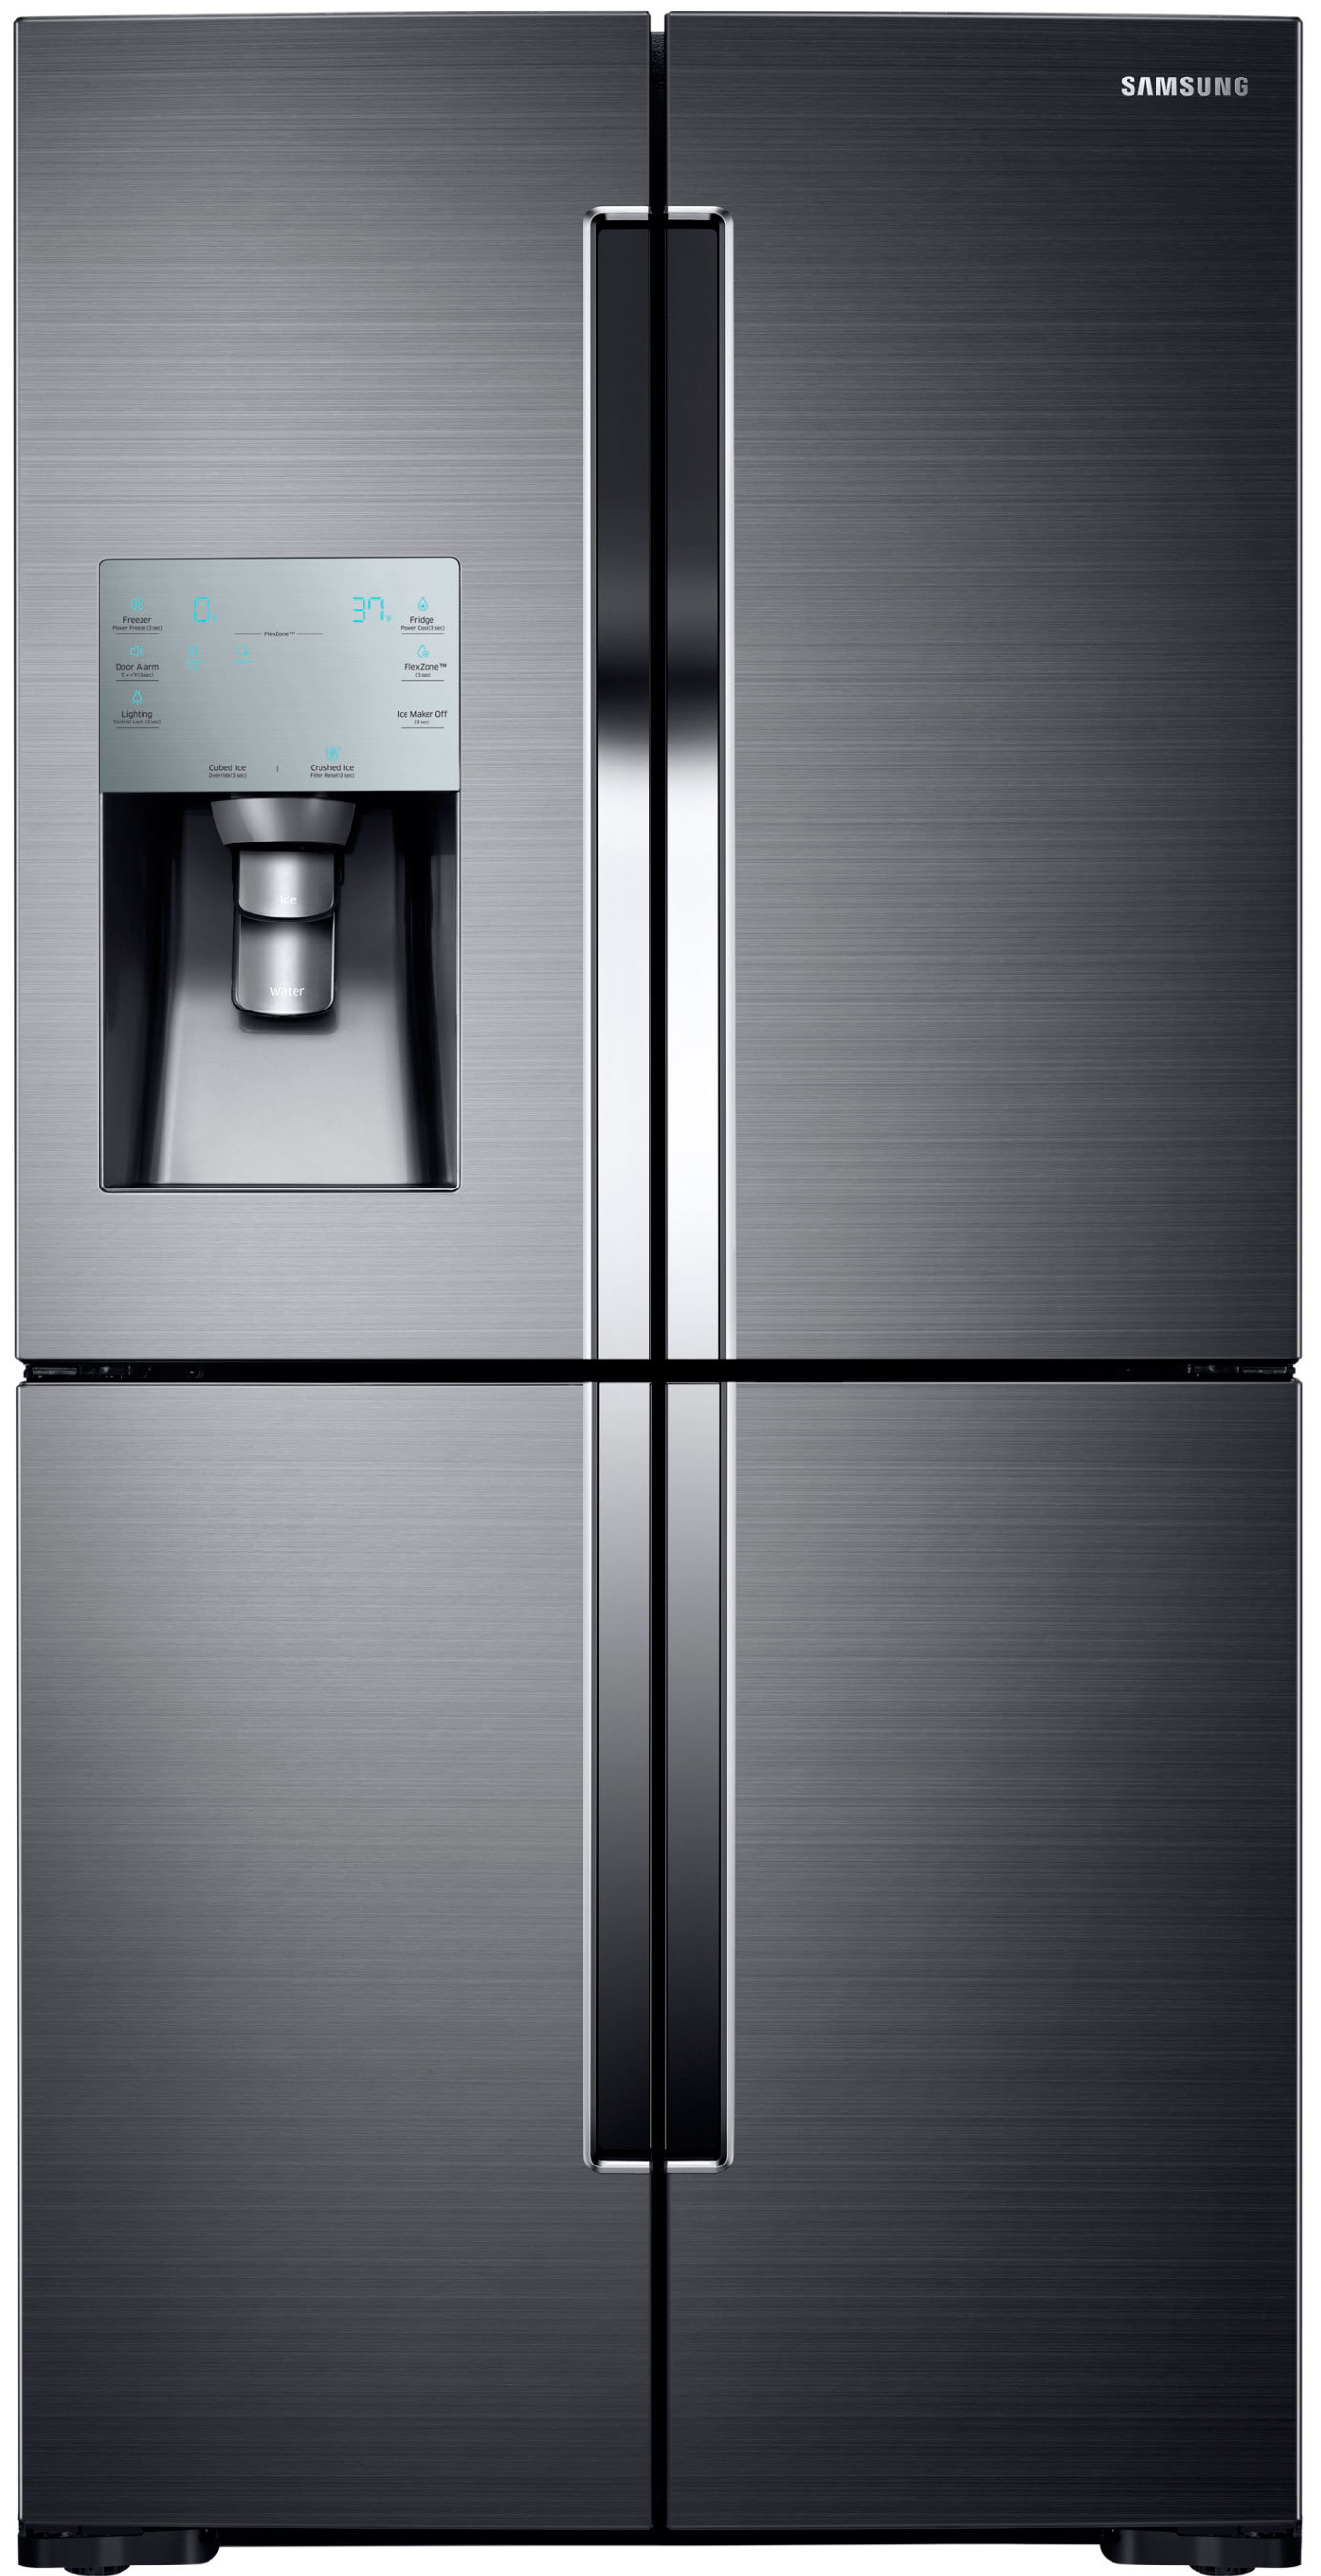 The basic RF28K9070. All three RF28K fridges are available in Samsung's version of black stainless, as well as conventional stainless steel.